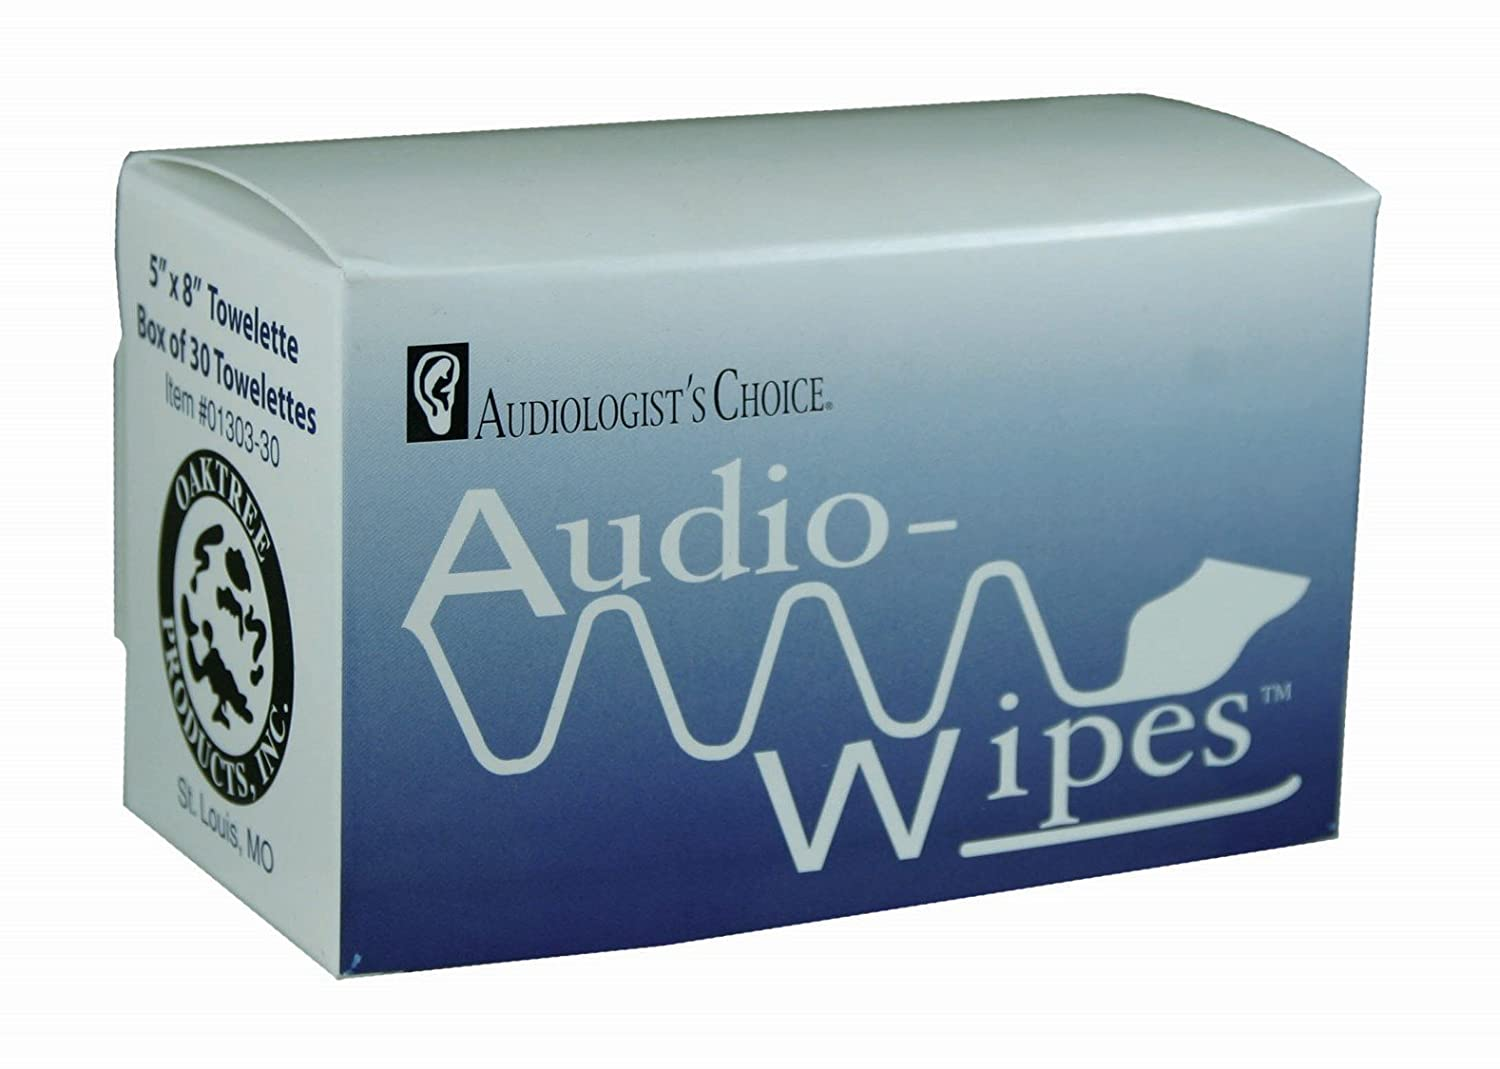 AudioWipes Individually Packaged Towelettes - Box of 30 Audiologist' s Choice LHS-01303-30